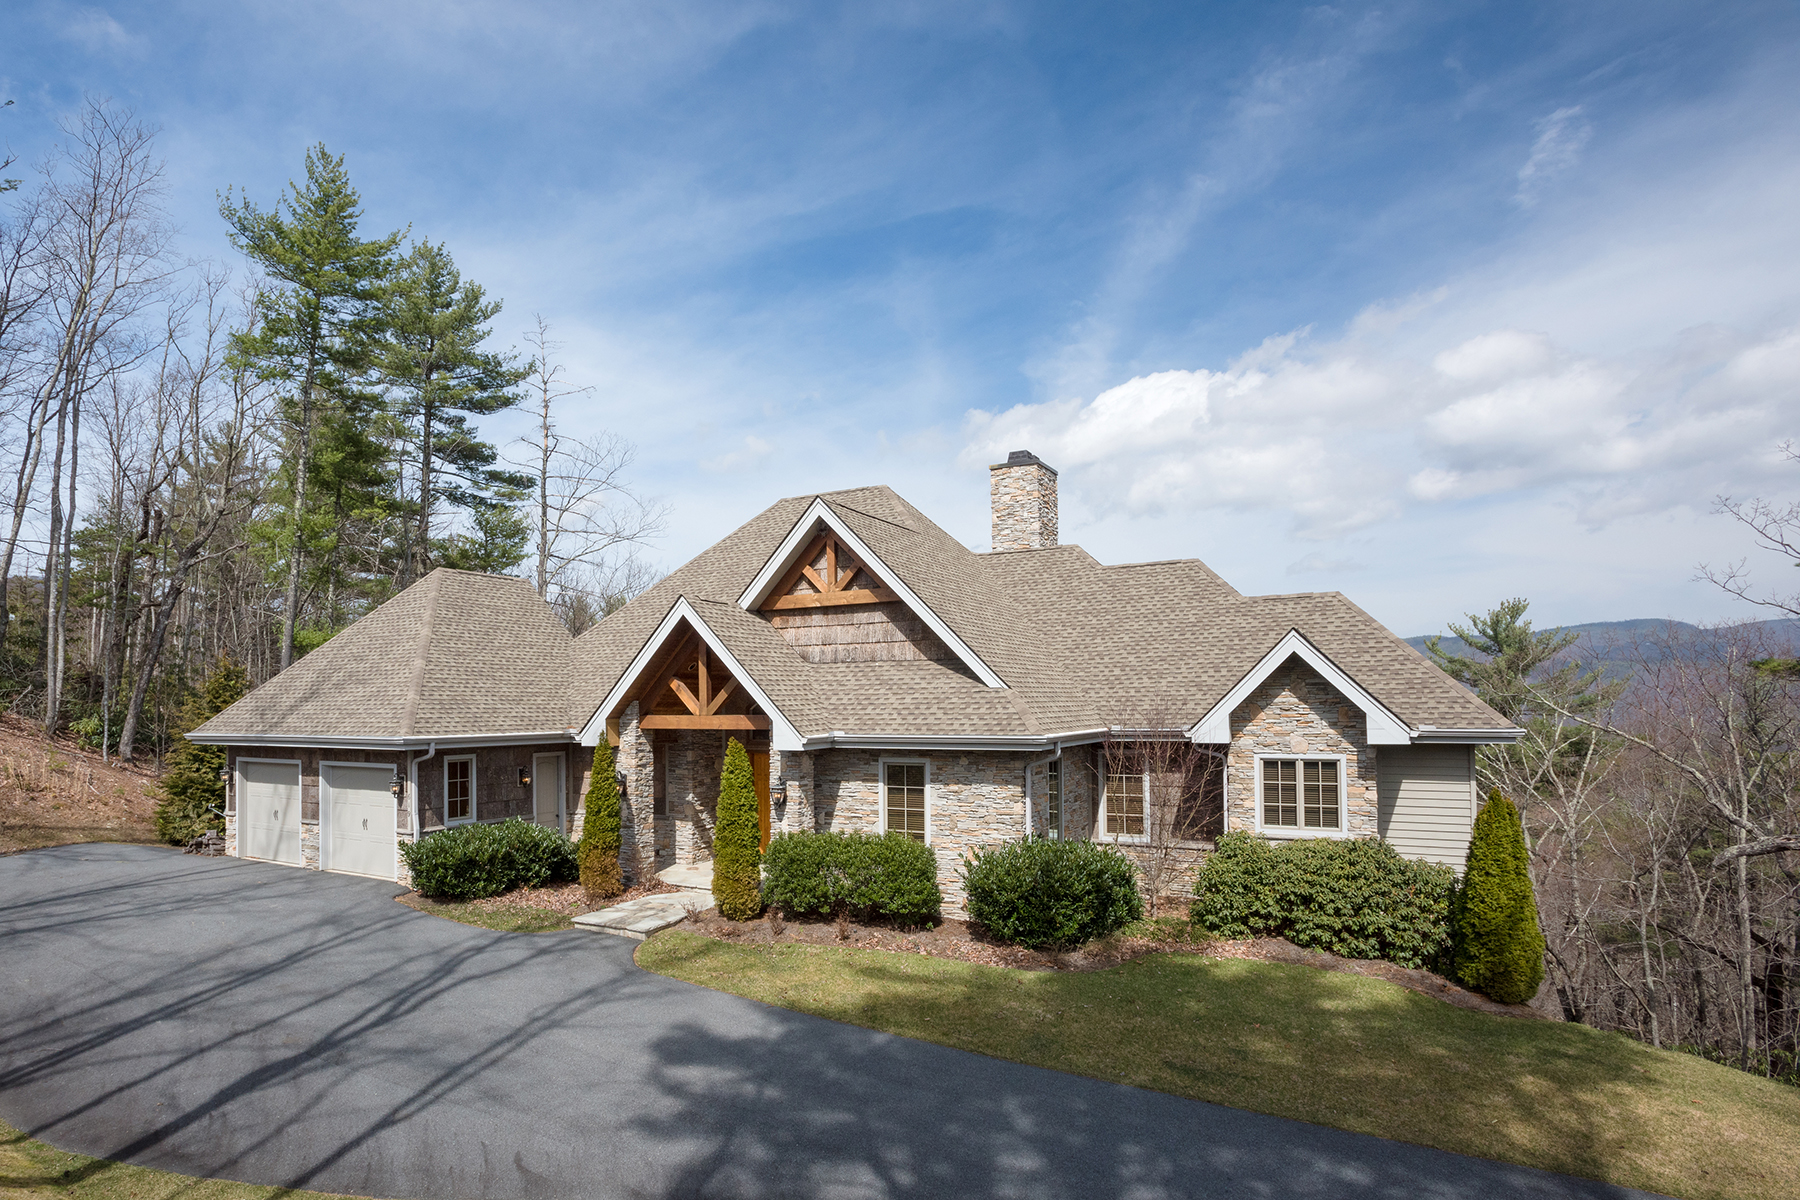 Single Family Home for Sale at Boone 619 Red Cedar Road Boone, North Carolina, 28607 United States